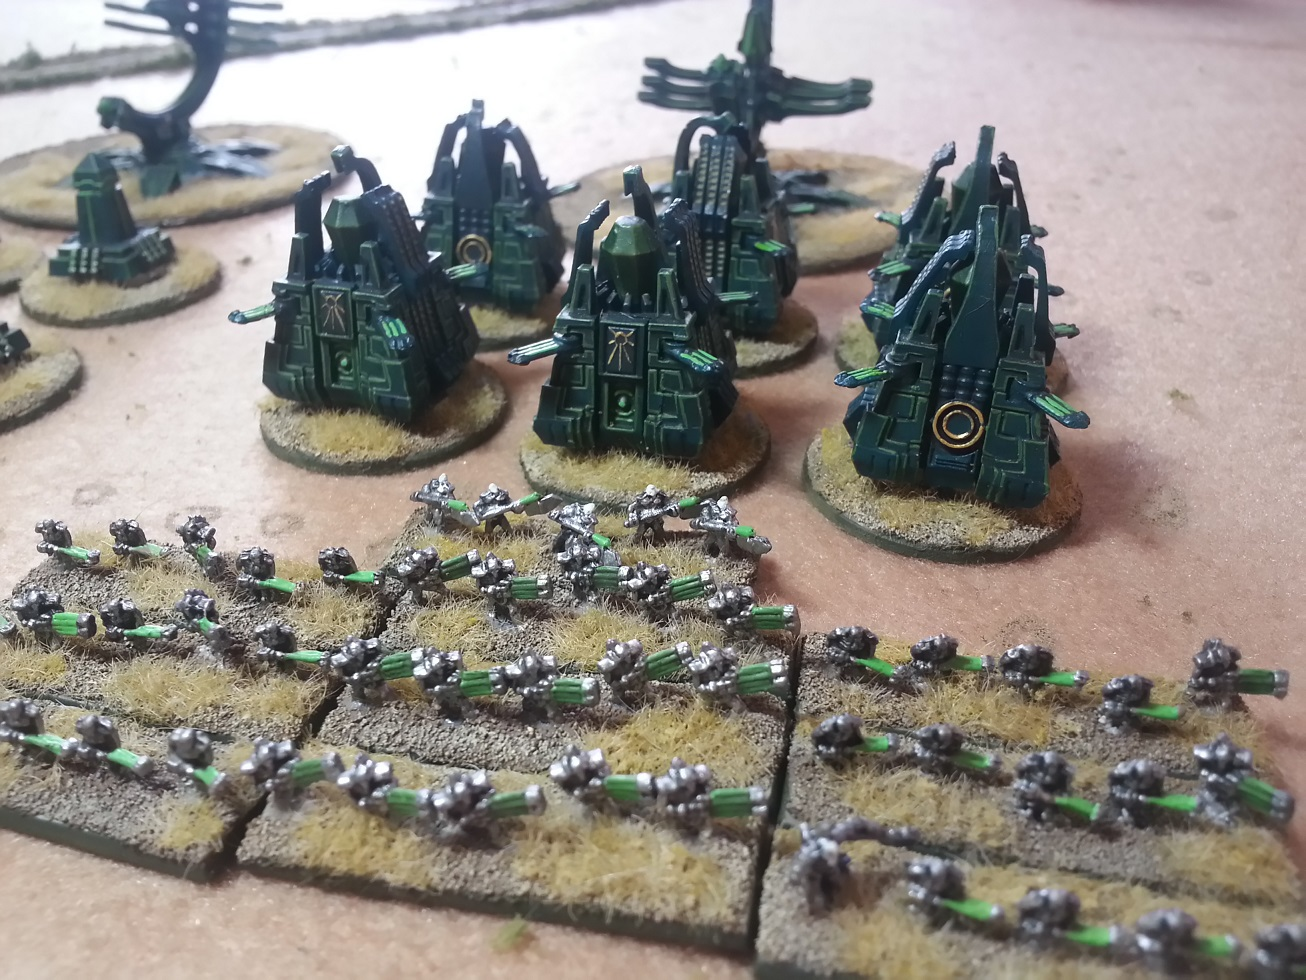 DIY Epic or Make Your Own Epic Necron Army! | Xenocidal's Wargaming Blog